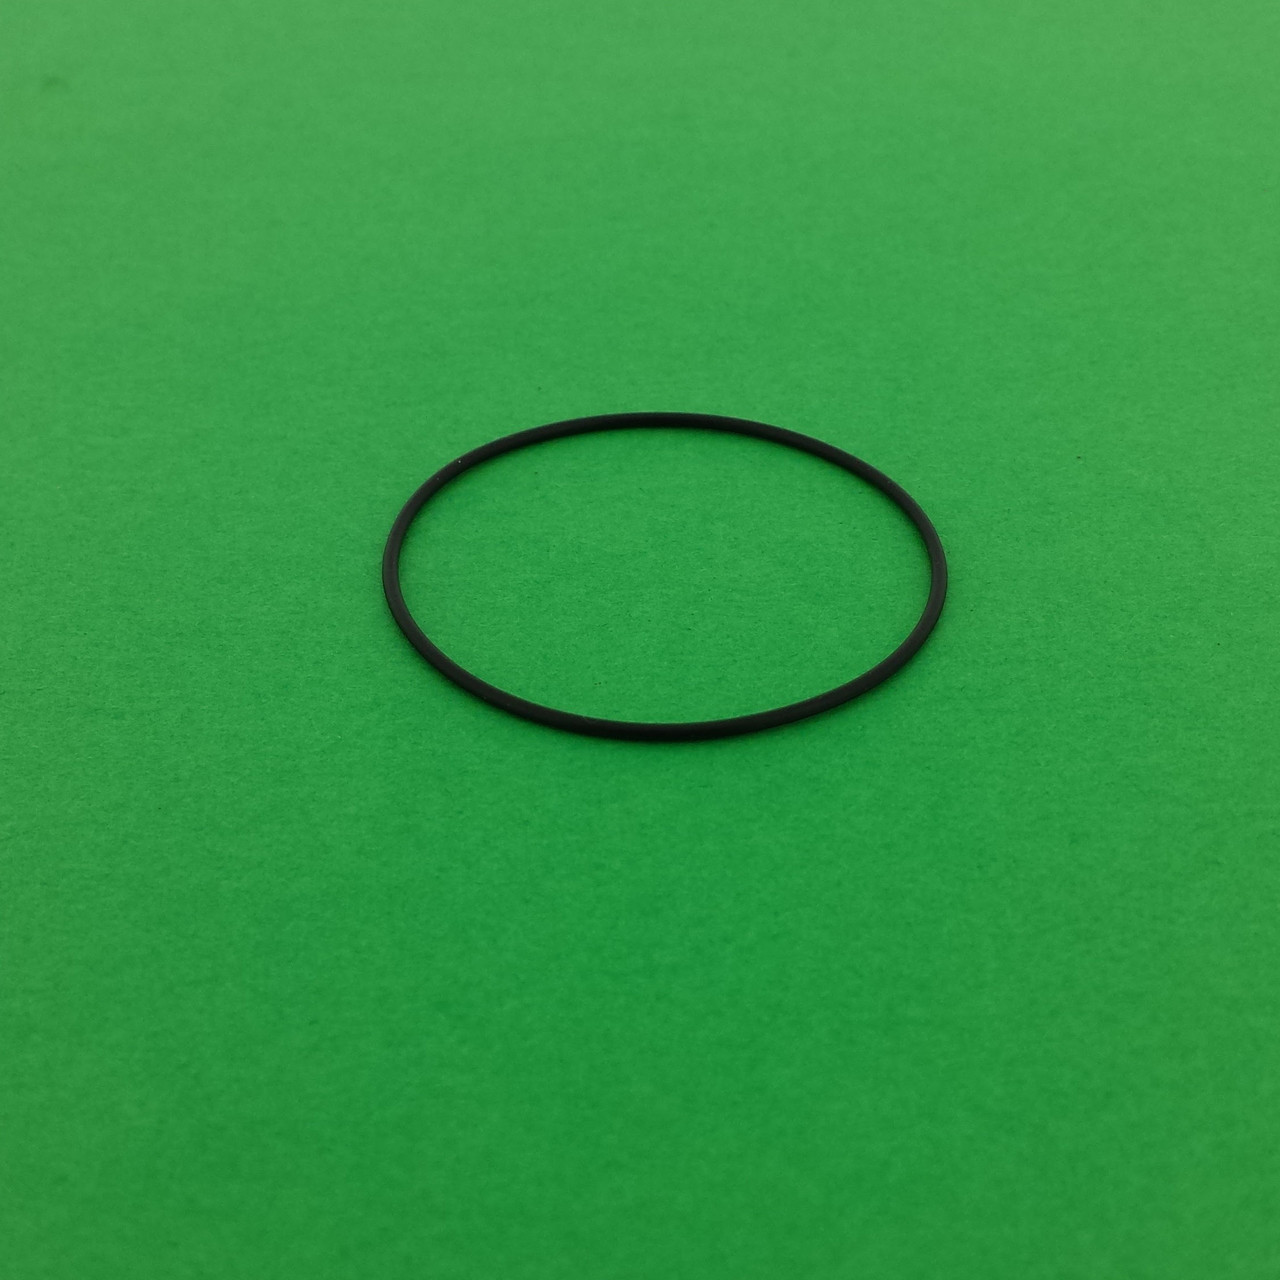 Case Back Gasket to Fit Rolex Mens GAS245-105 Main